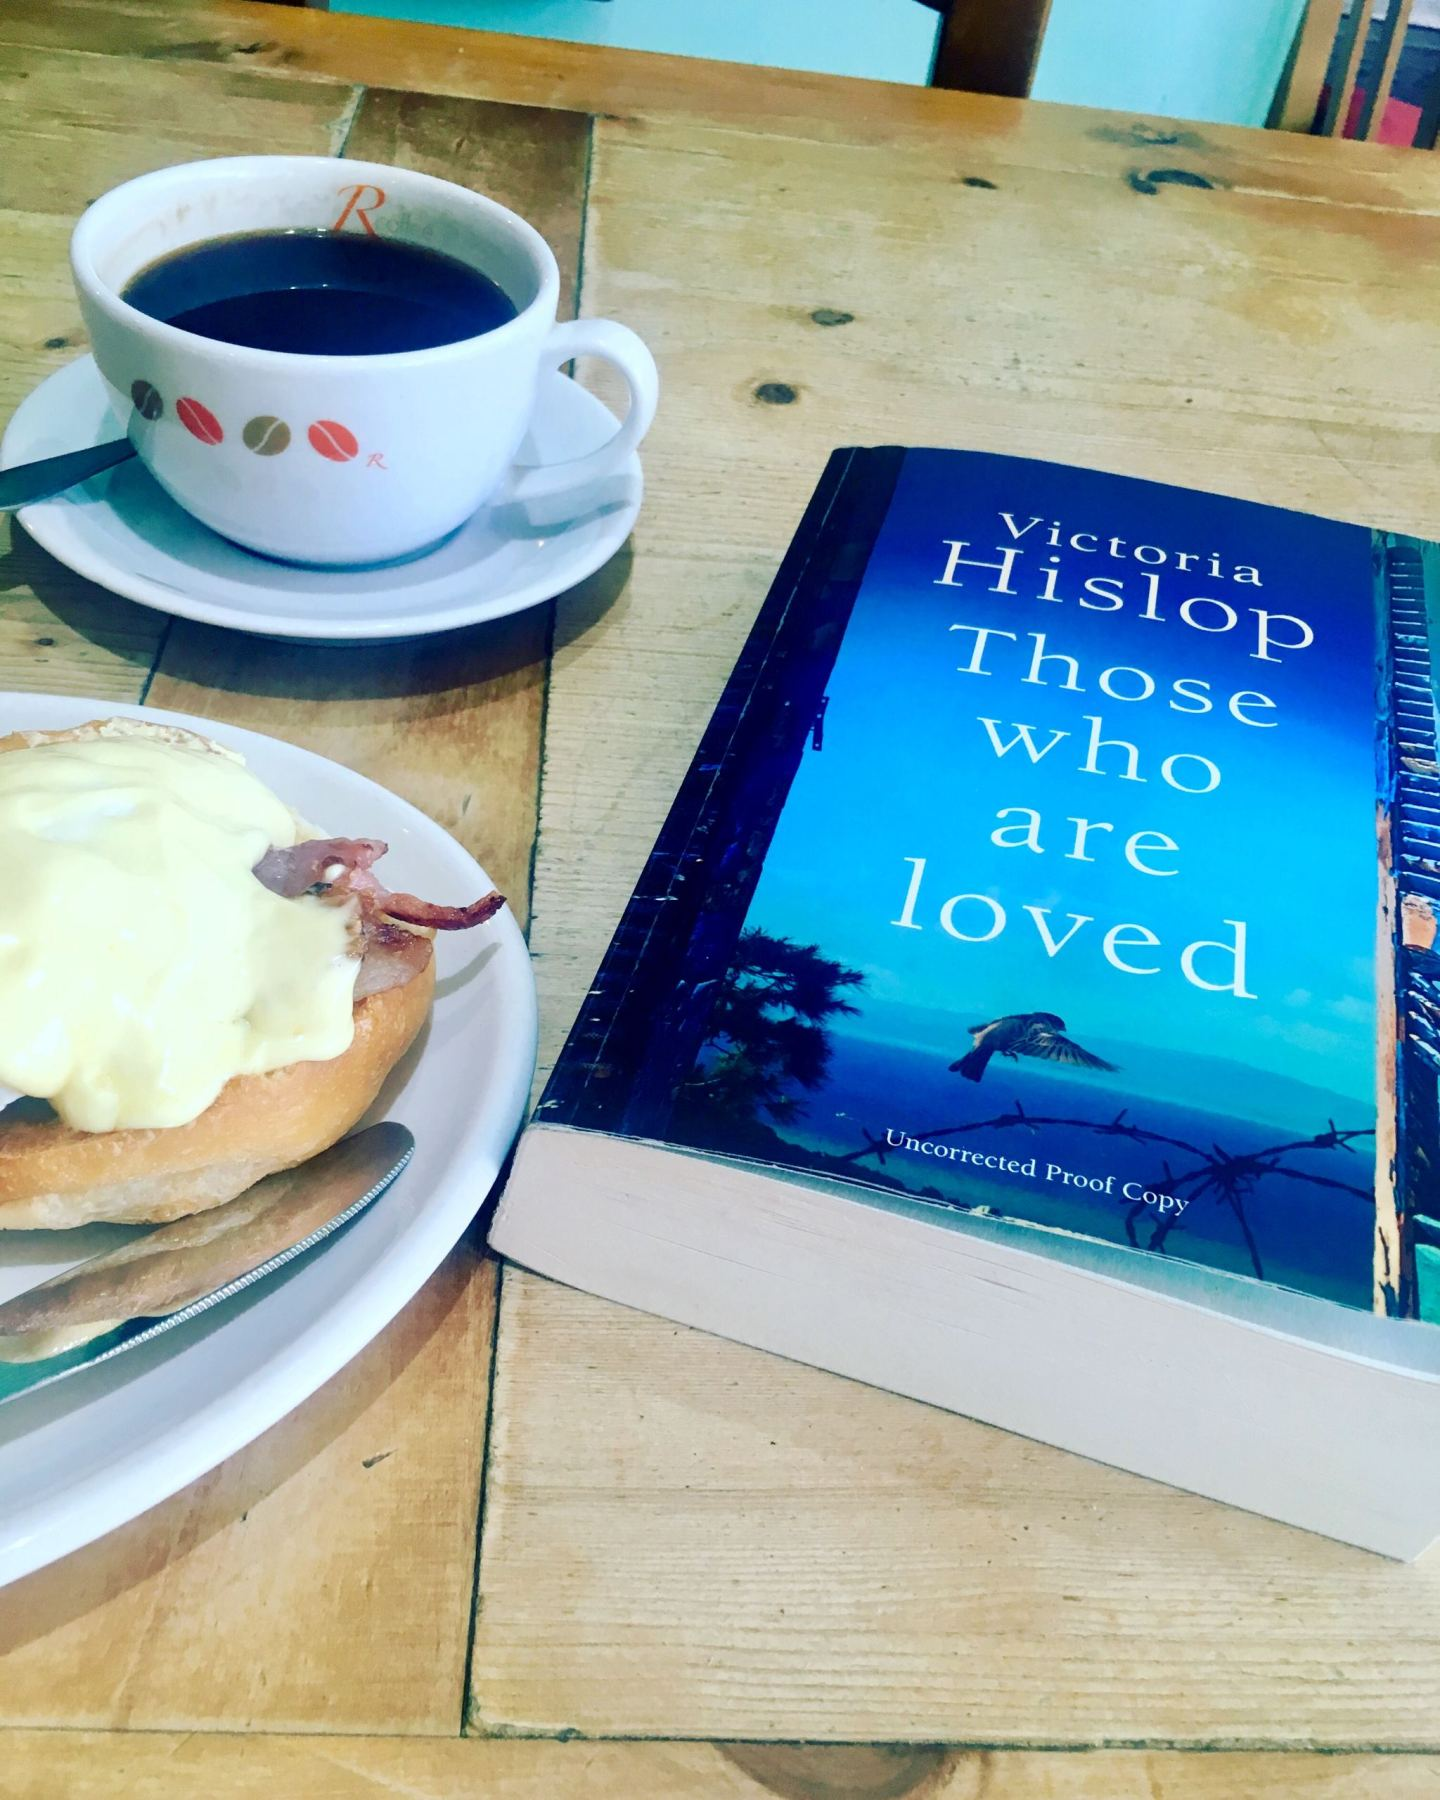 Powerful and poignant: Those Who Are Loved by Victoria Hislop